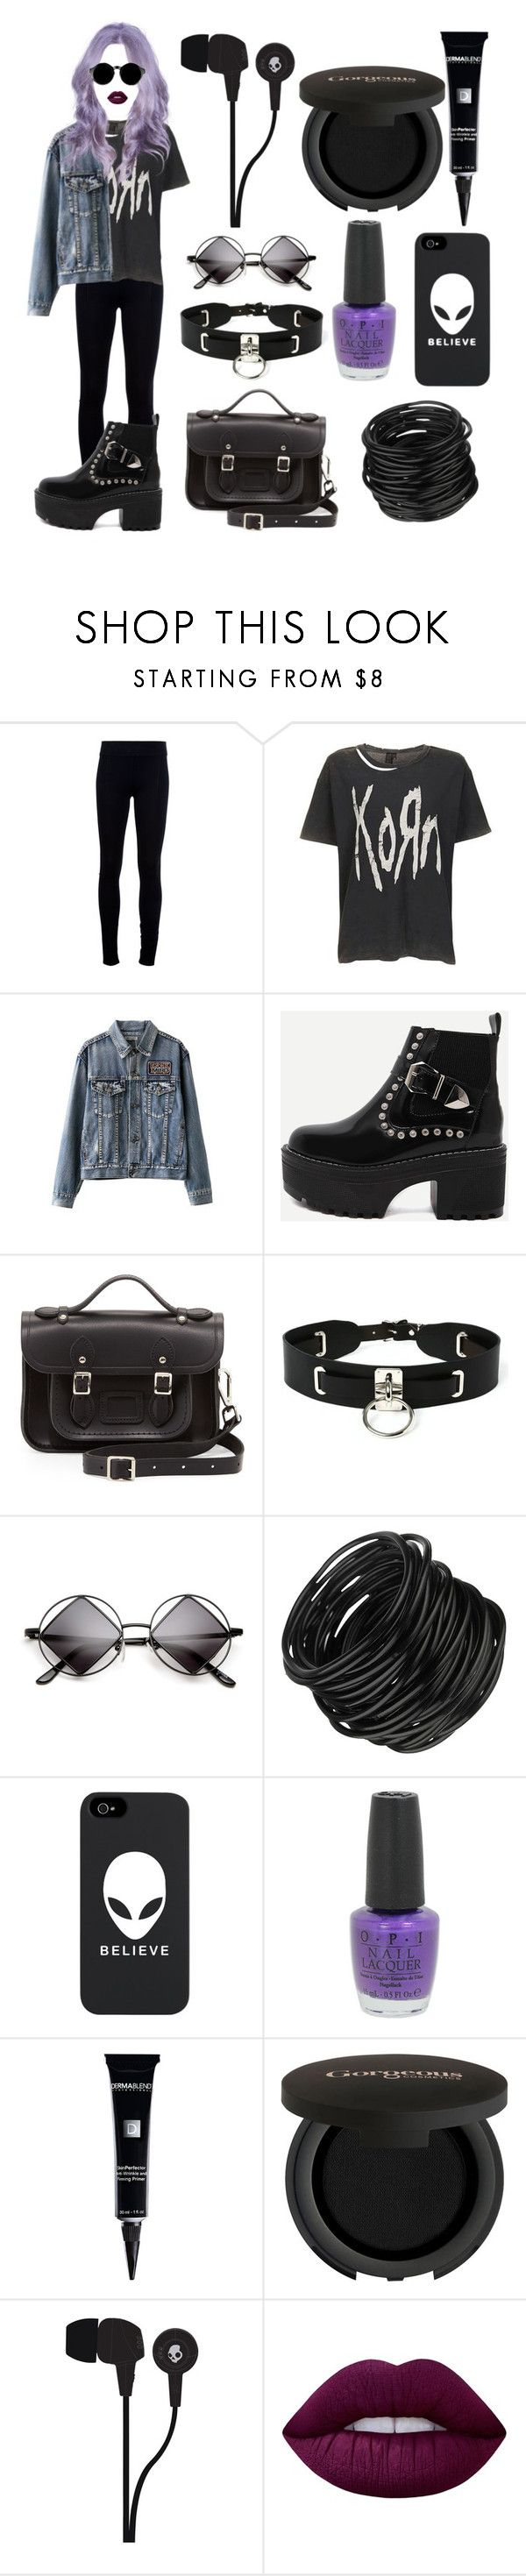 """Song to Say Goodbye ✖️"" by violenceinsilence ❤ liked on Polyvore featuring Helmut Lang, Topshop, WithChic, The Cambridge Satchel Company, Zana Bayne, OPI, Dermablend, Gorgeous Cosmetics, Skullcandy and Lime Crime"